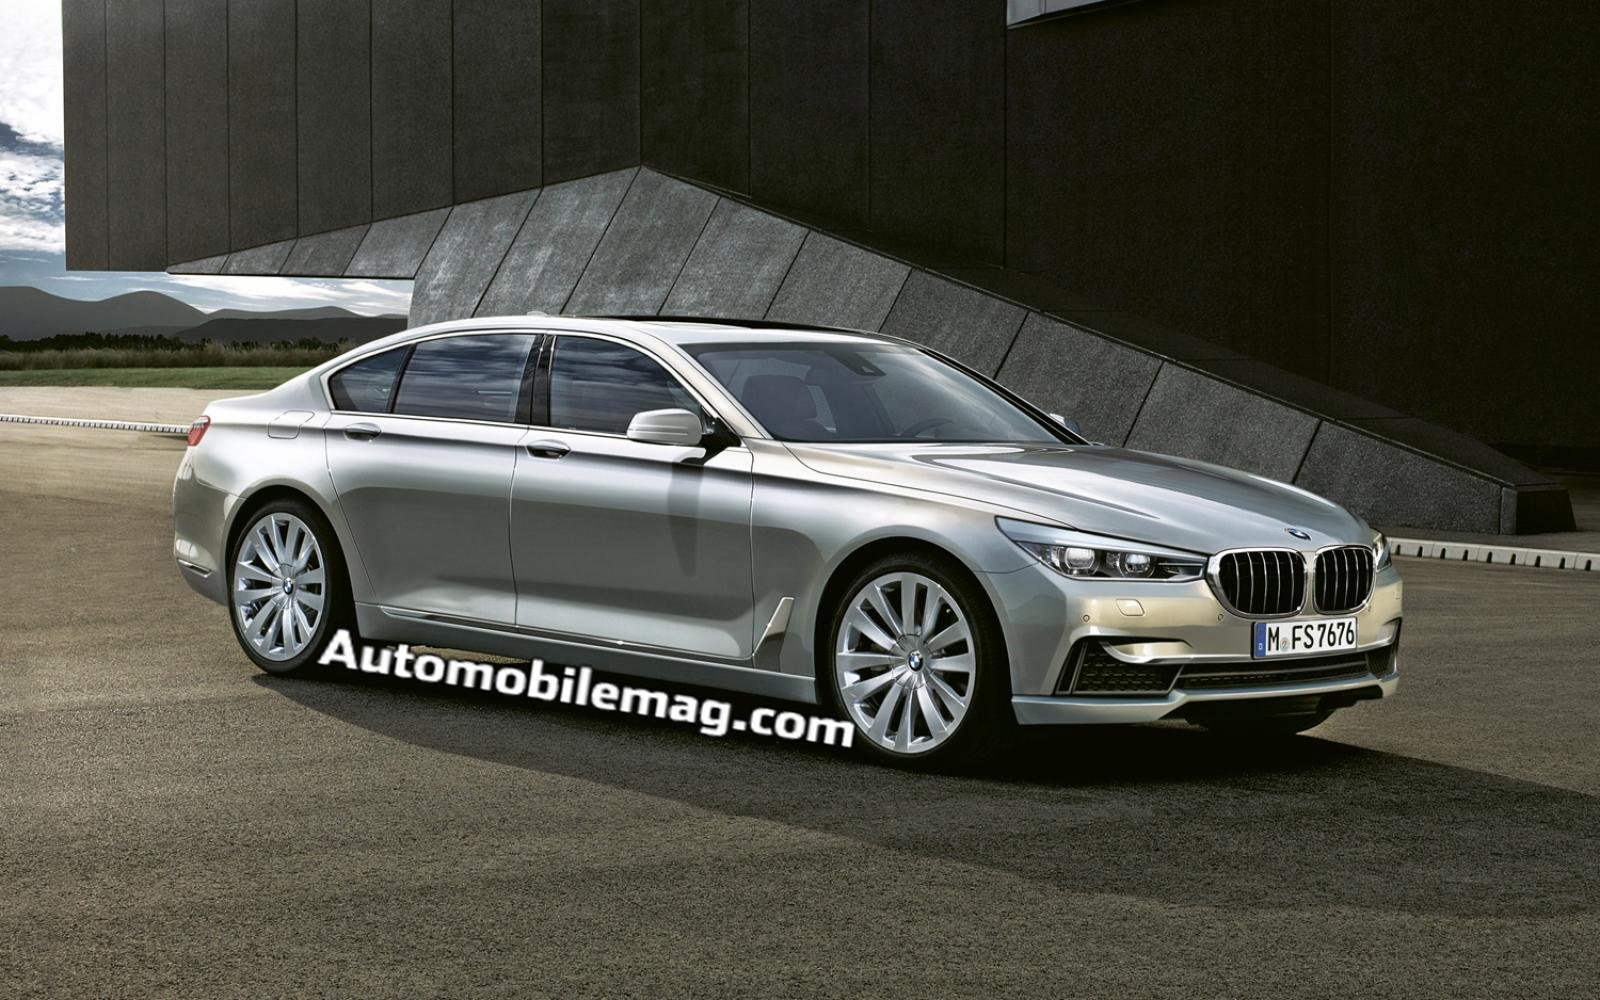 2015 Bmw 7 Series Information And Photos Zombiedrive